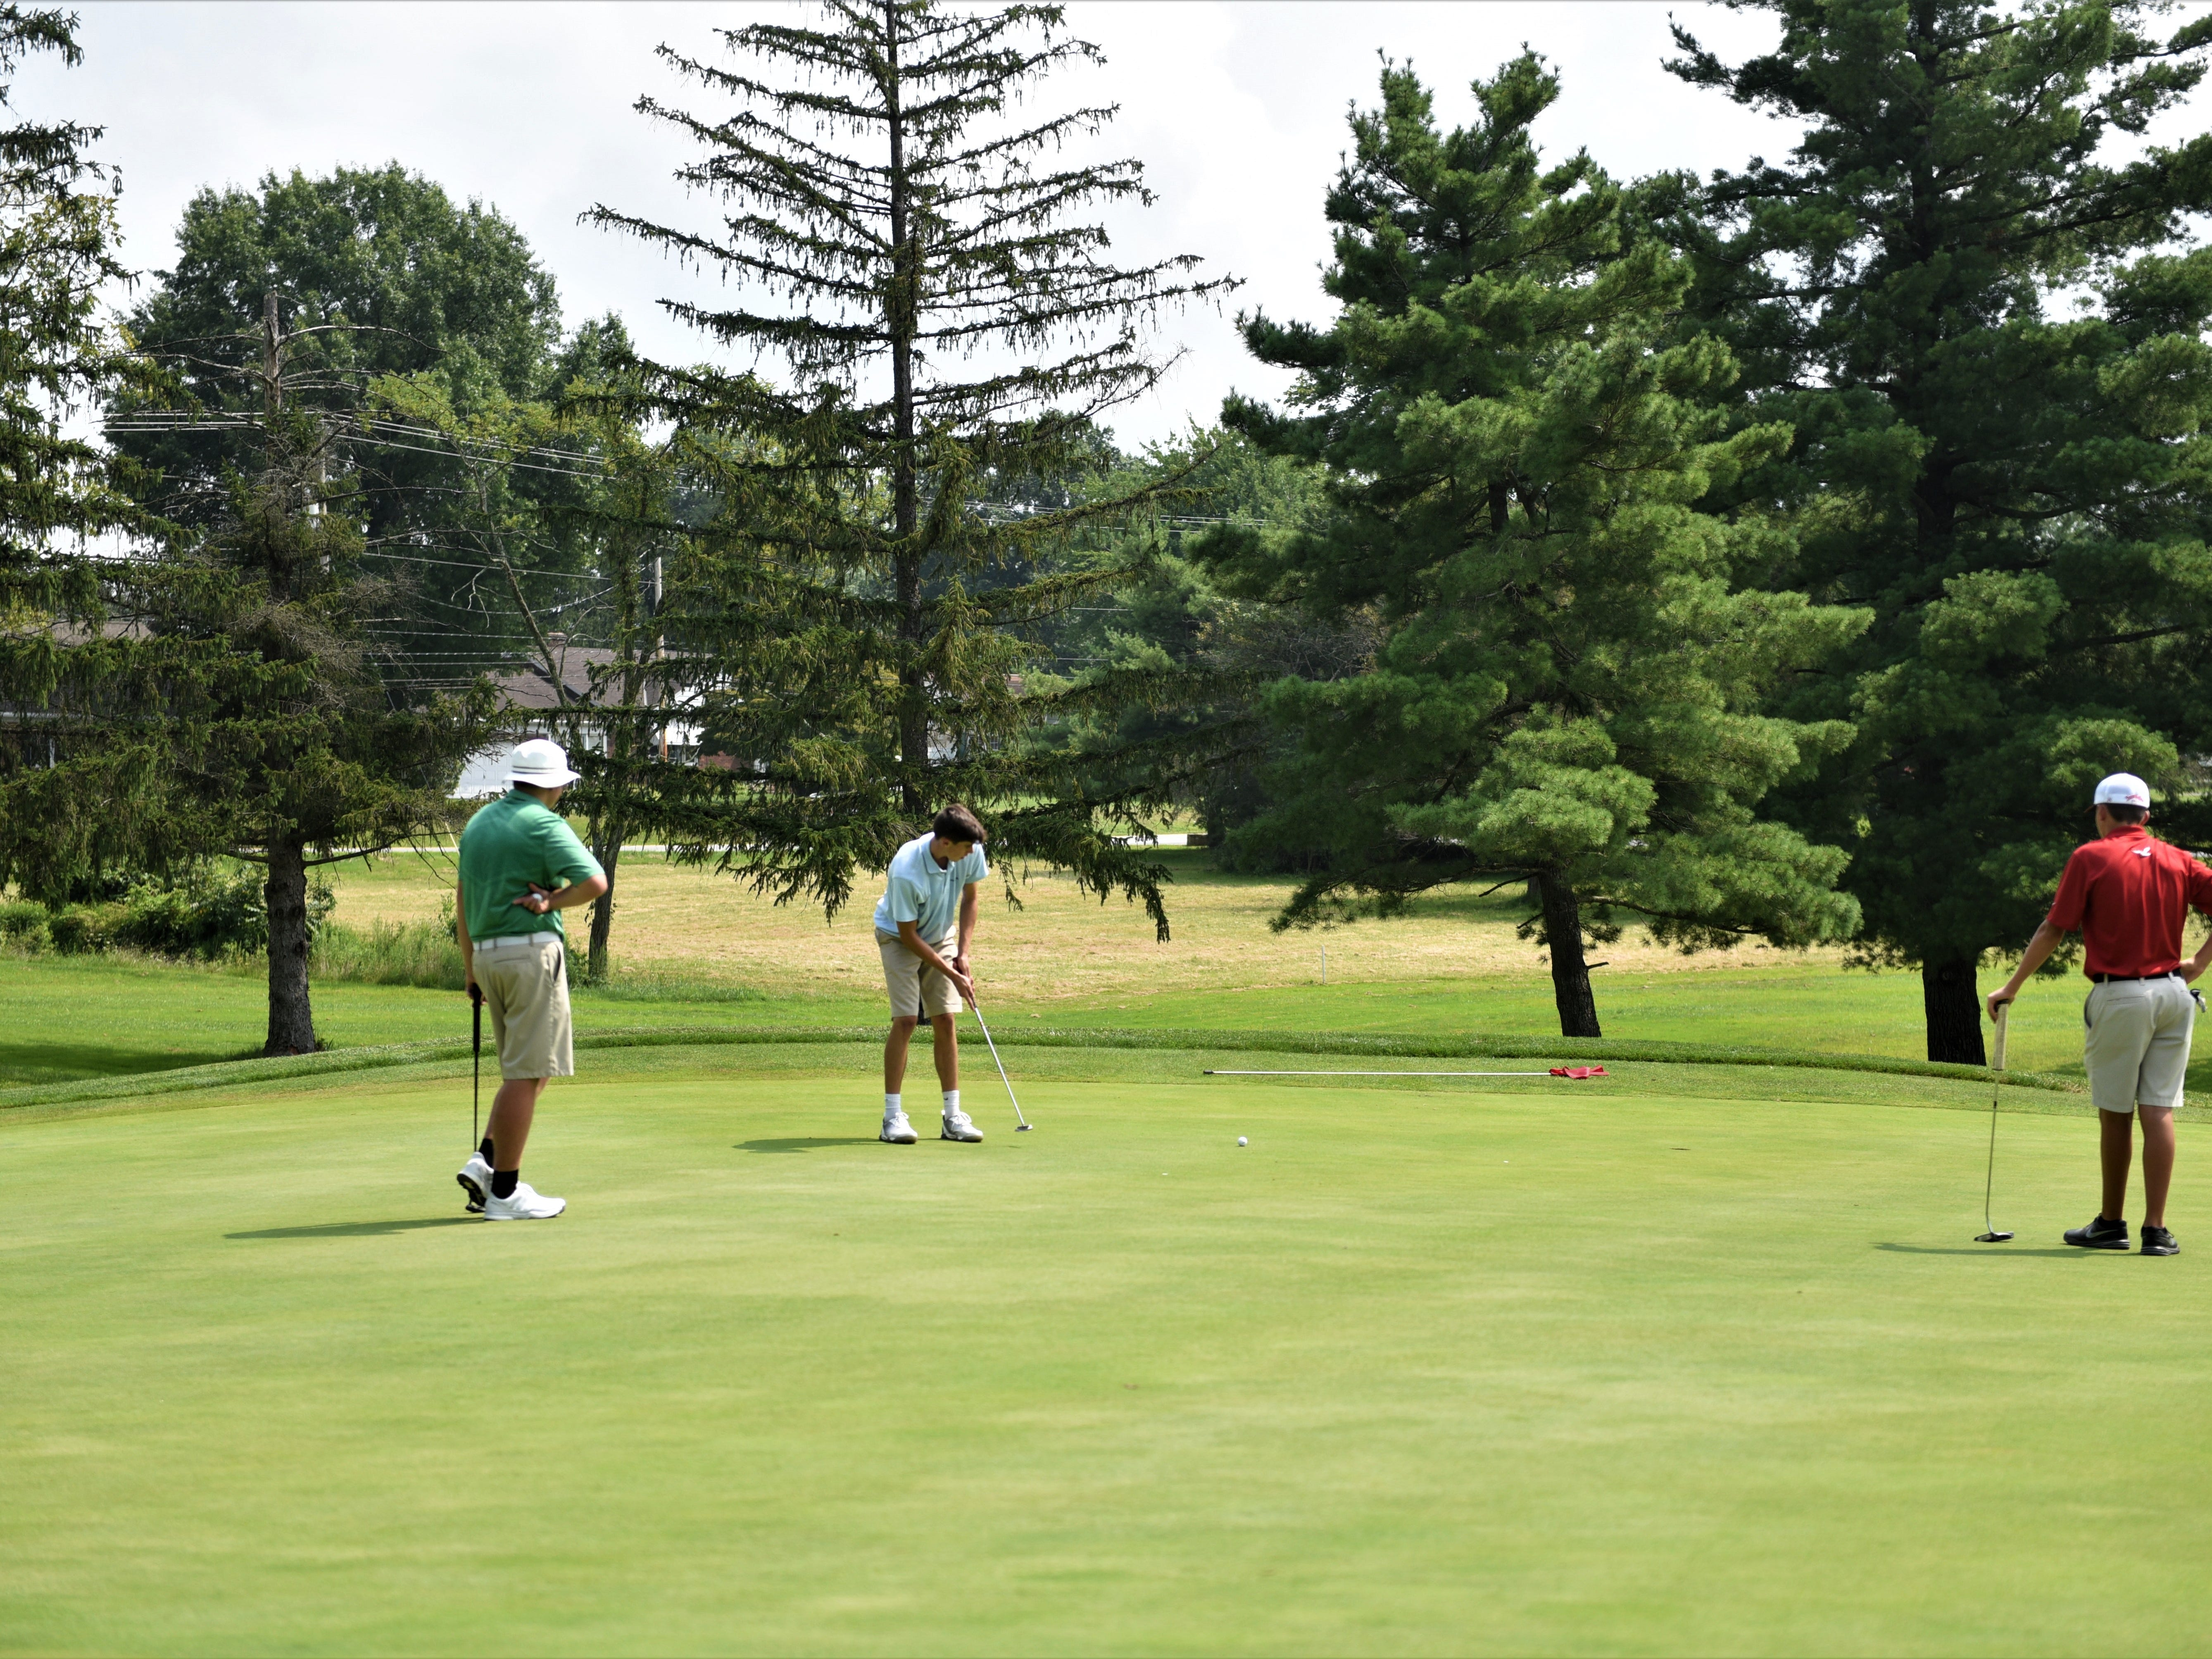 York Catholic's Russel McPaul, left and Bermudian Springs' Tucker Byers, right, wait while Delone Catholic's Corbyn Keller putts during the Division III golf match at the South Hills Golf Course on Aug. 27, 2018.